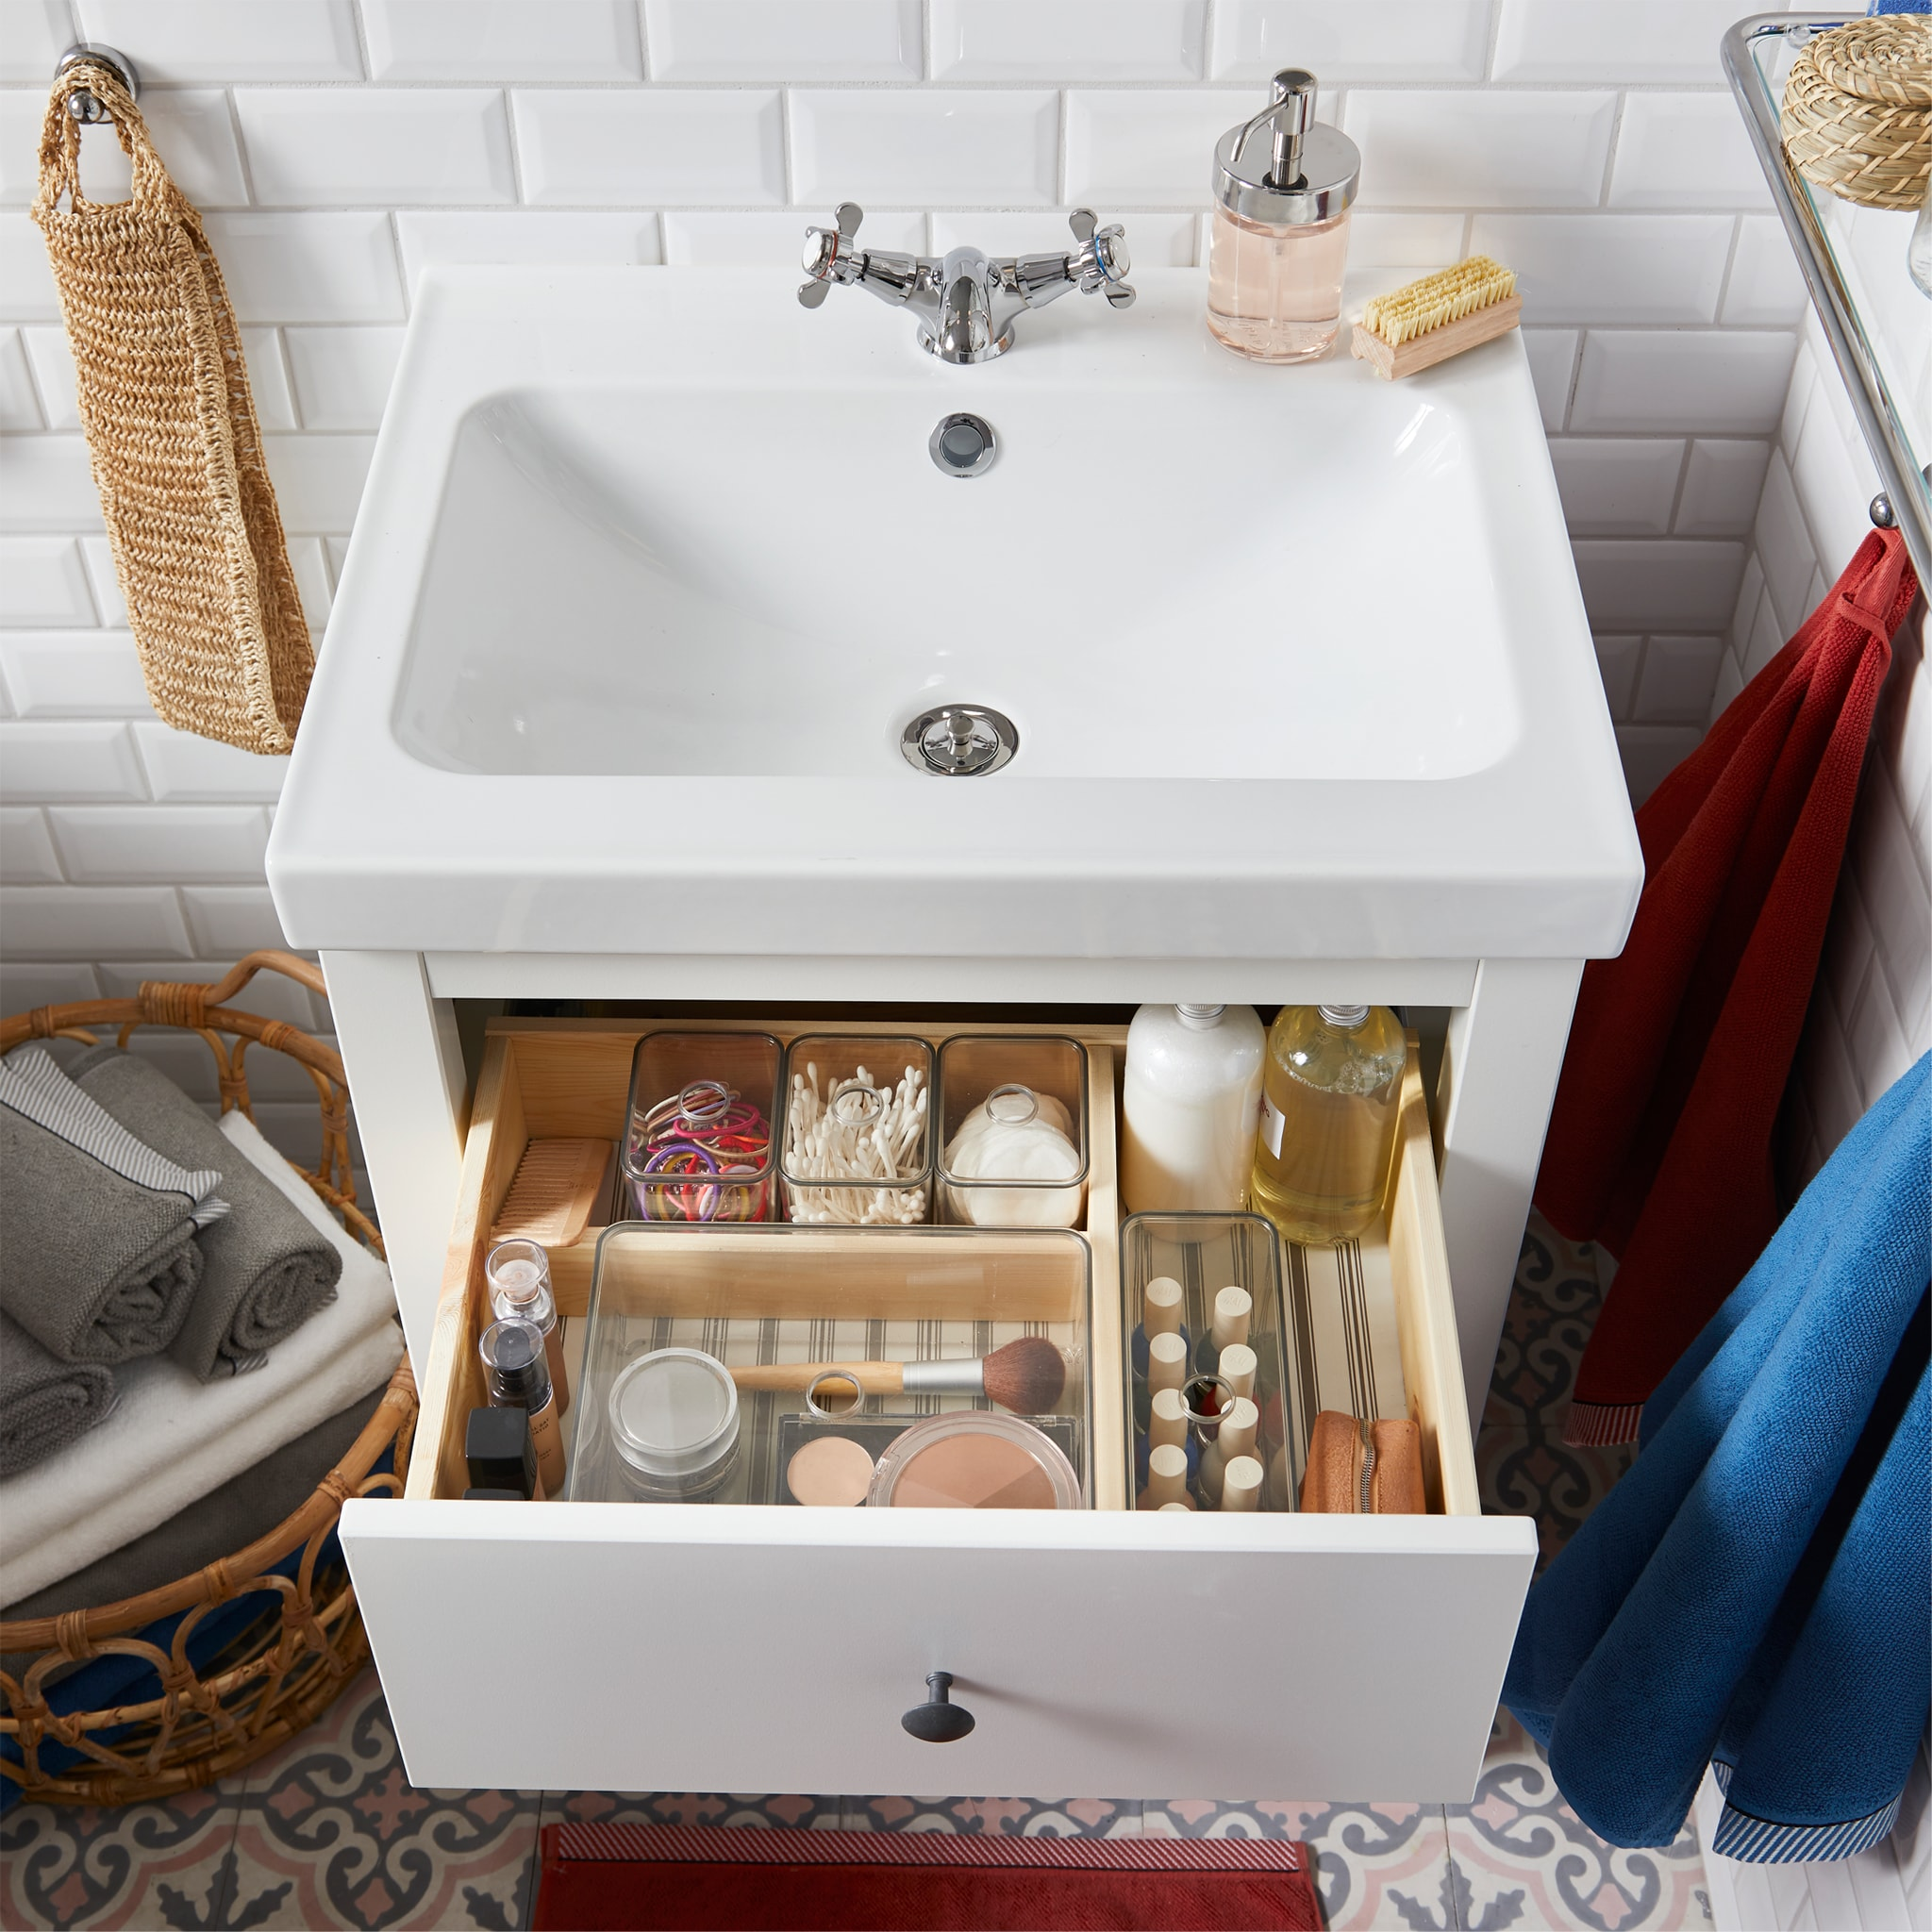 White wash stand with an open drawer and inside is small smoked boxes with lids that store small bathroom items, like makeup.